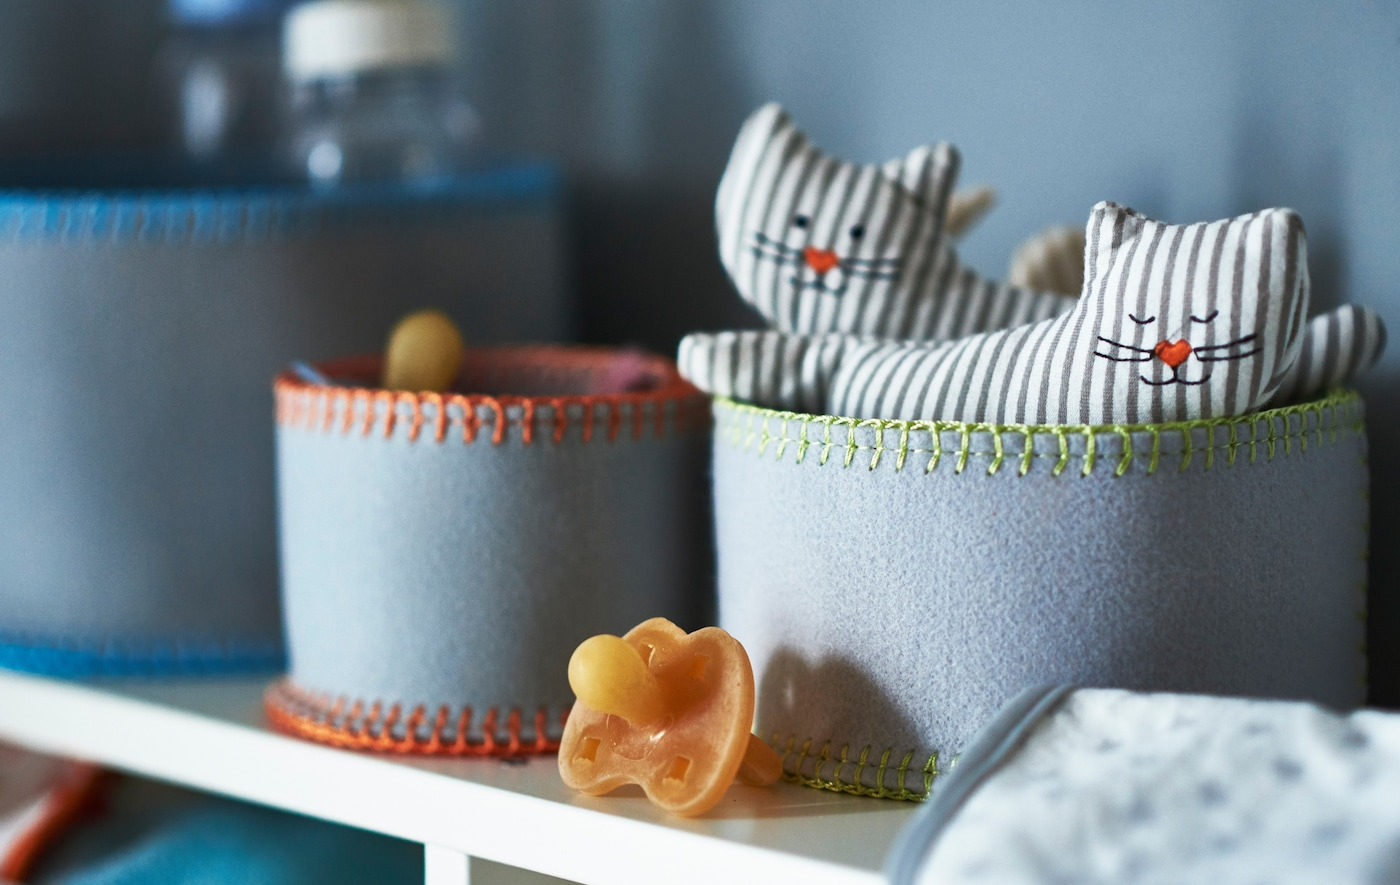 A close-up of felt storage baskets holding baby stuff like dummies and cat-shaped rattles.